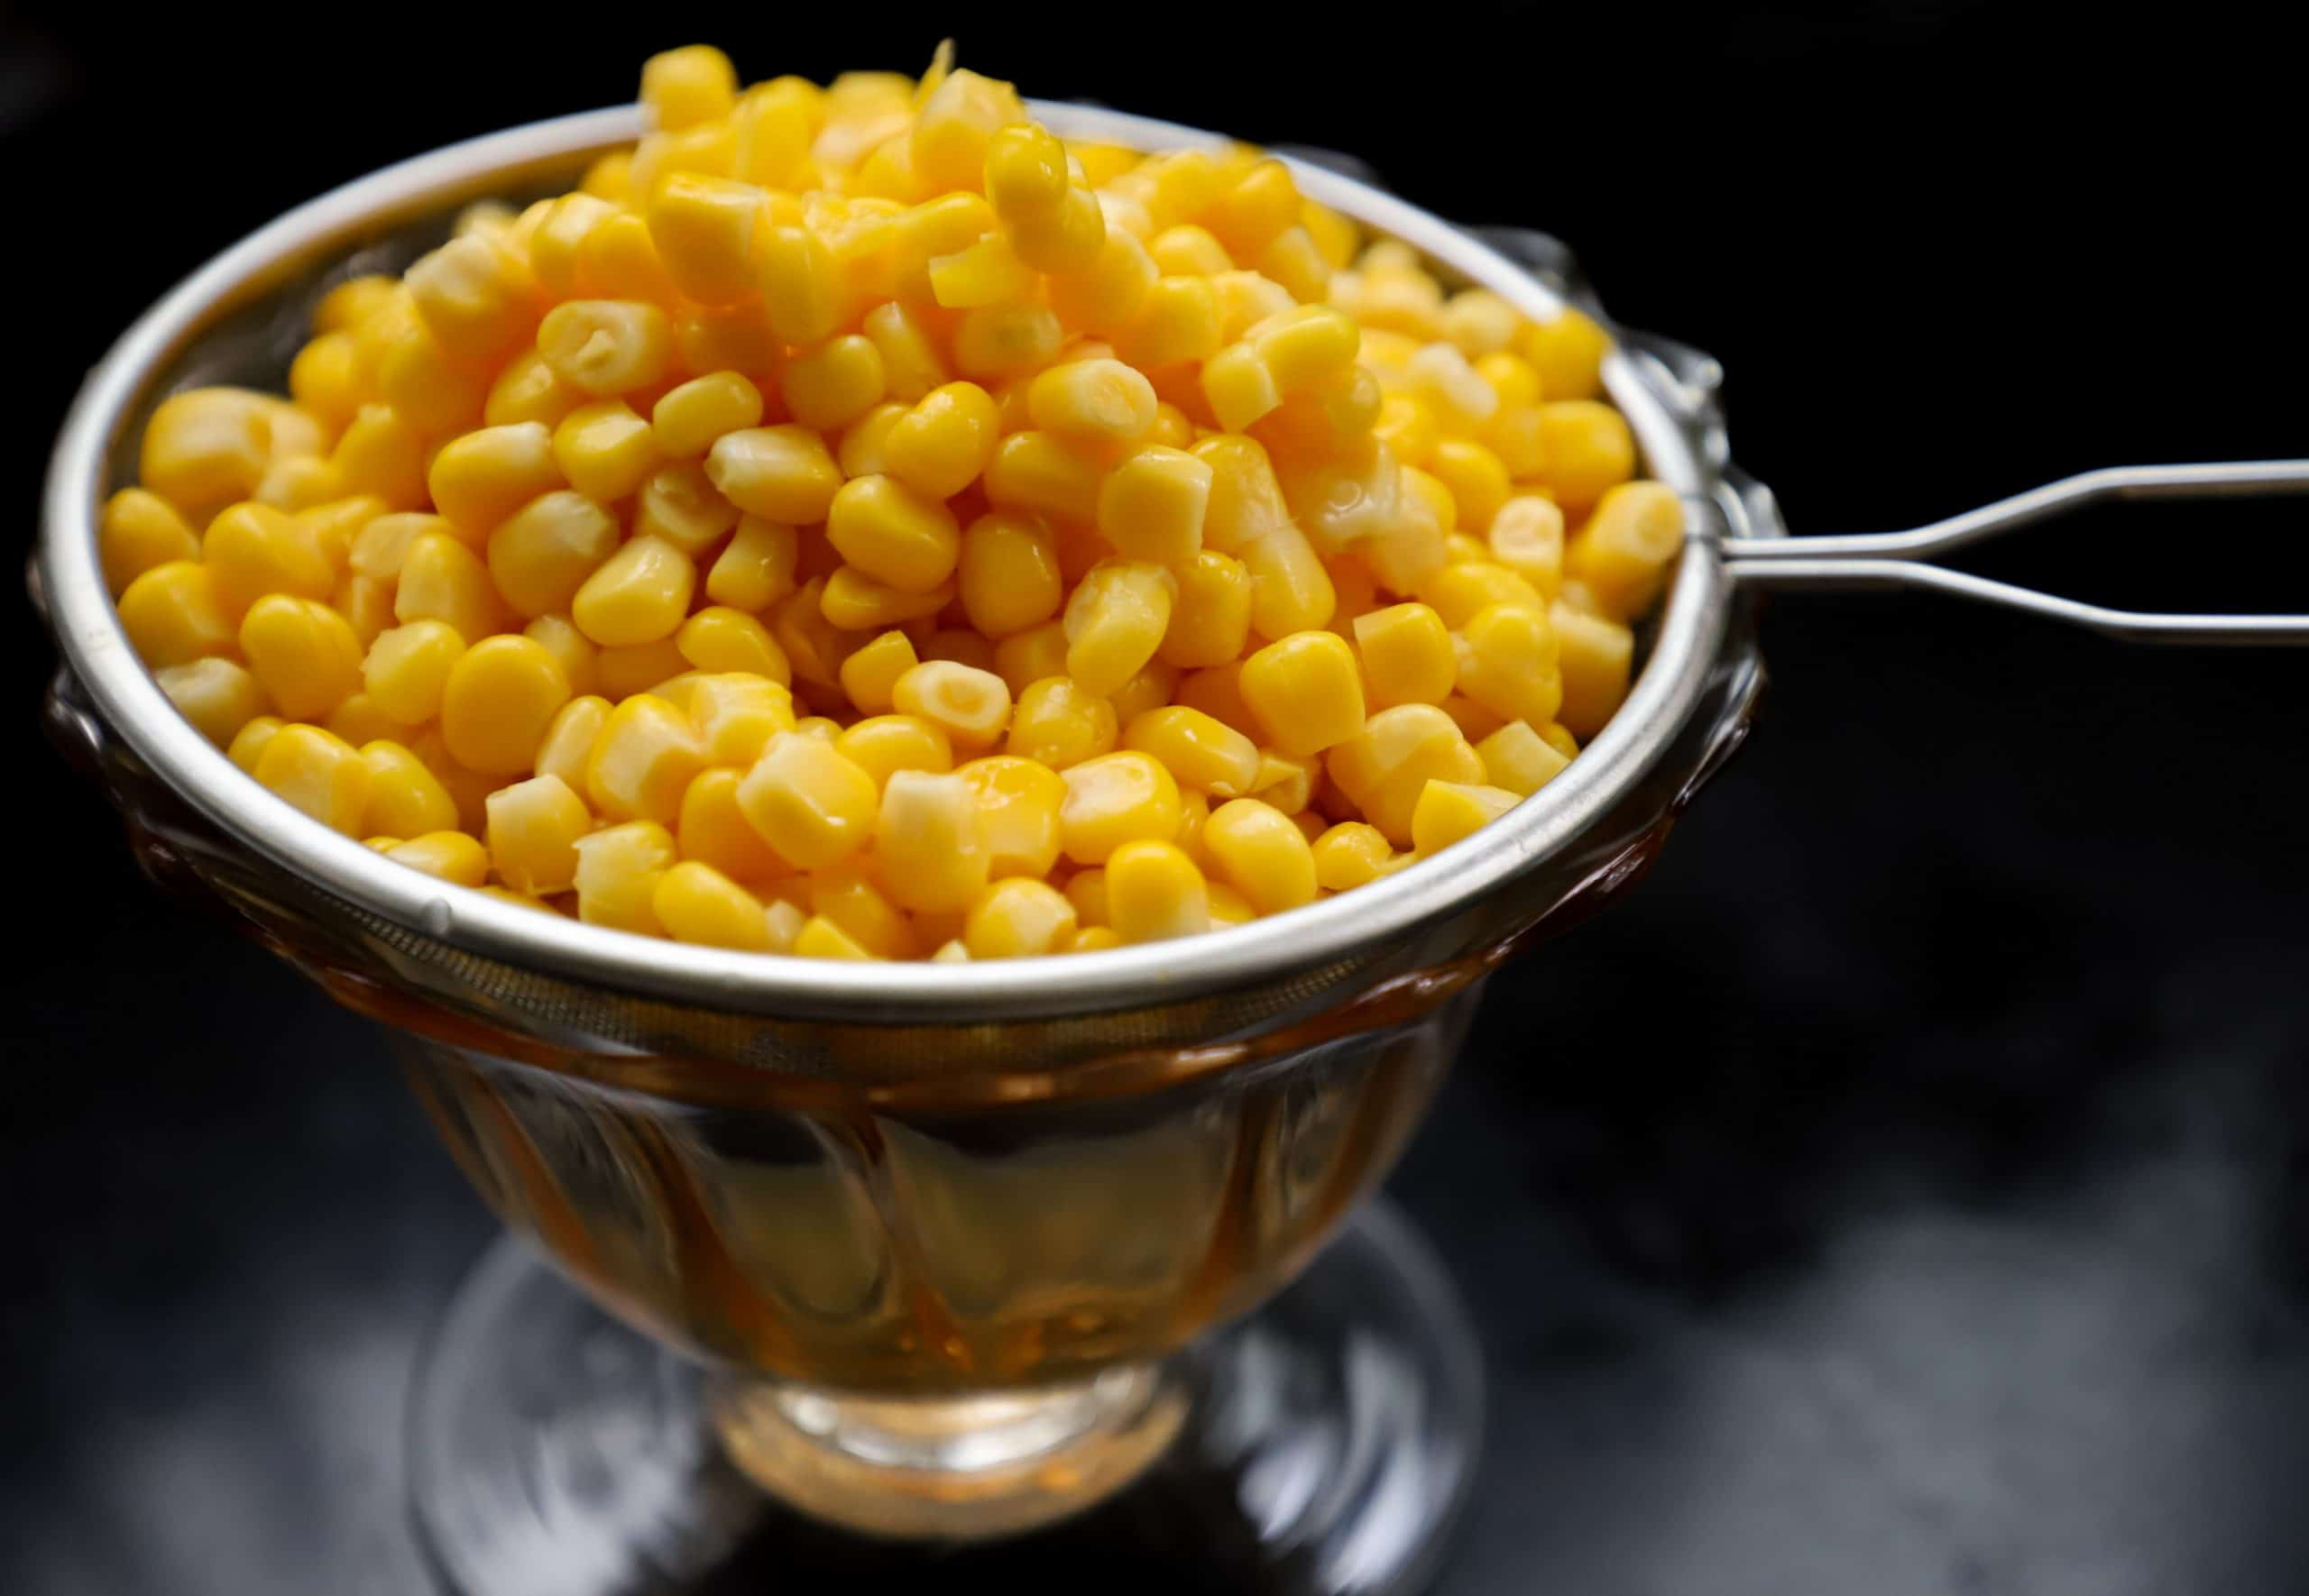 What Do We Know About Corn